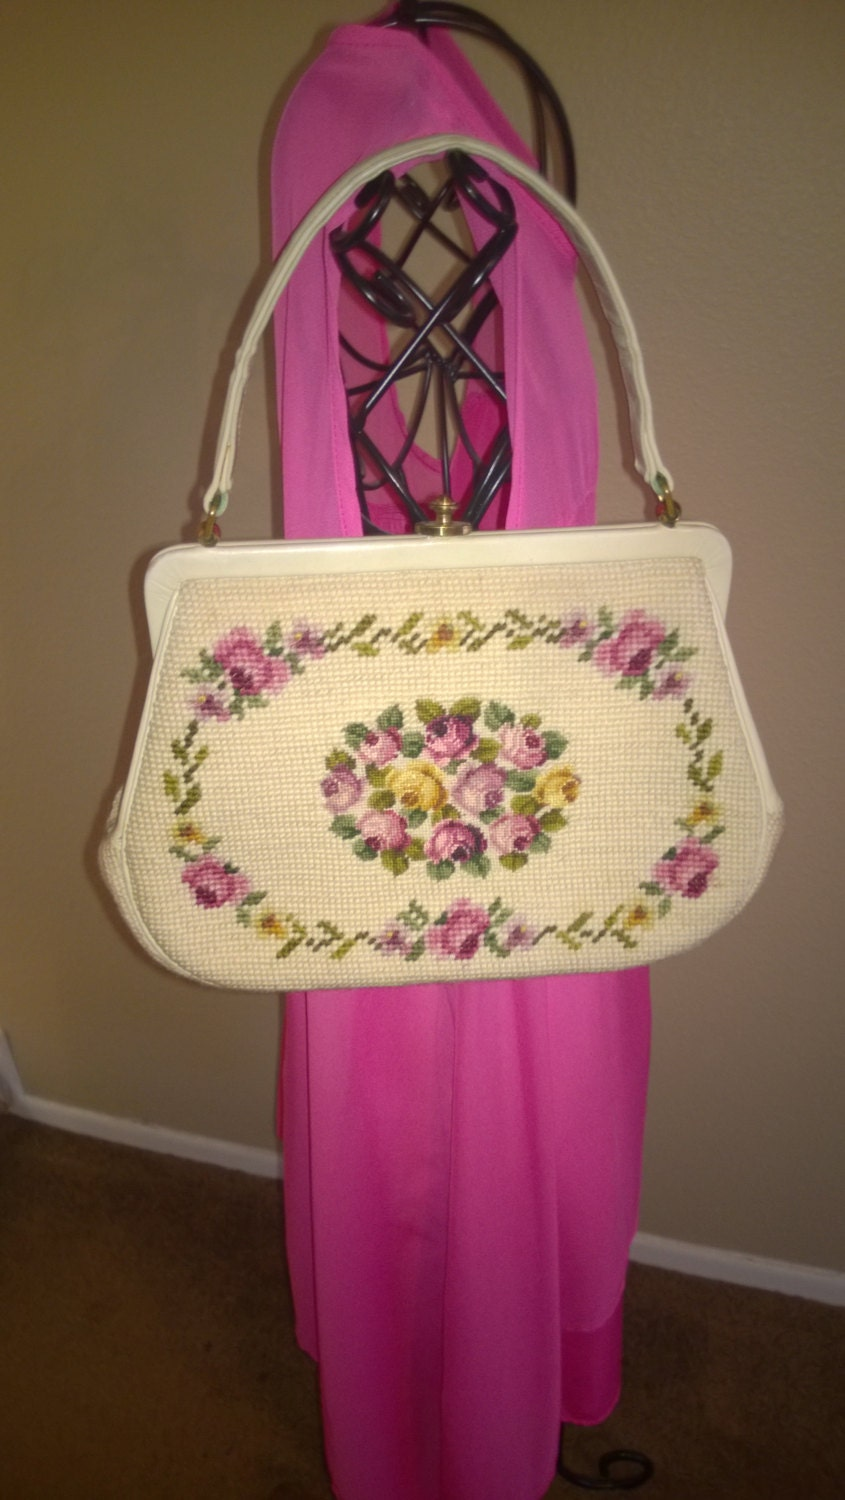 Rose tapestry embroidered purse with mirror s handbag